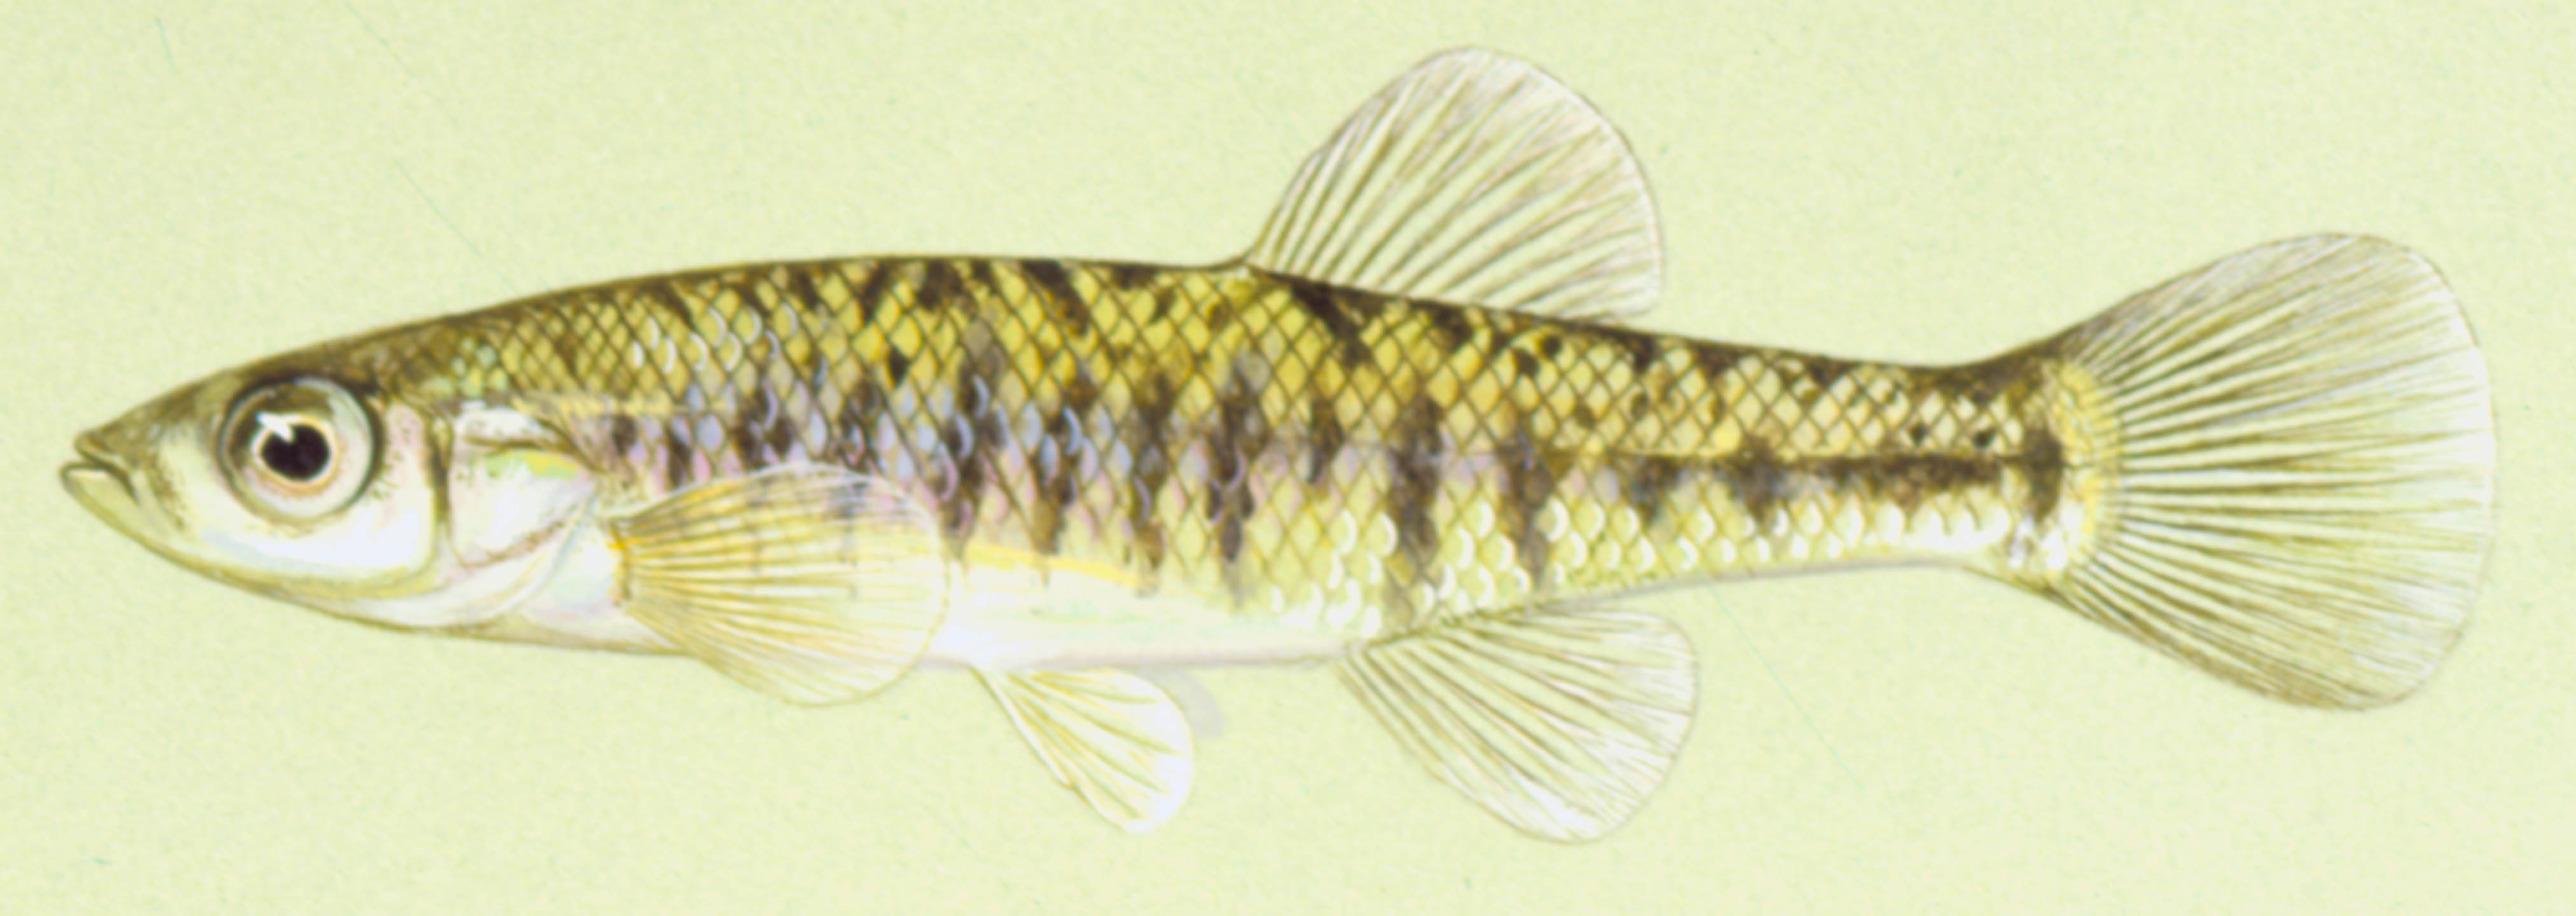 Banded killifish, photo courtesy of Konrad Schmidt, copyright Konrad Schmidt